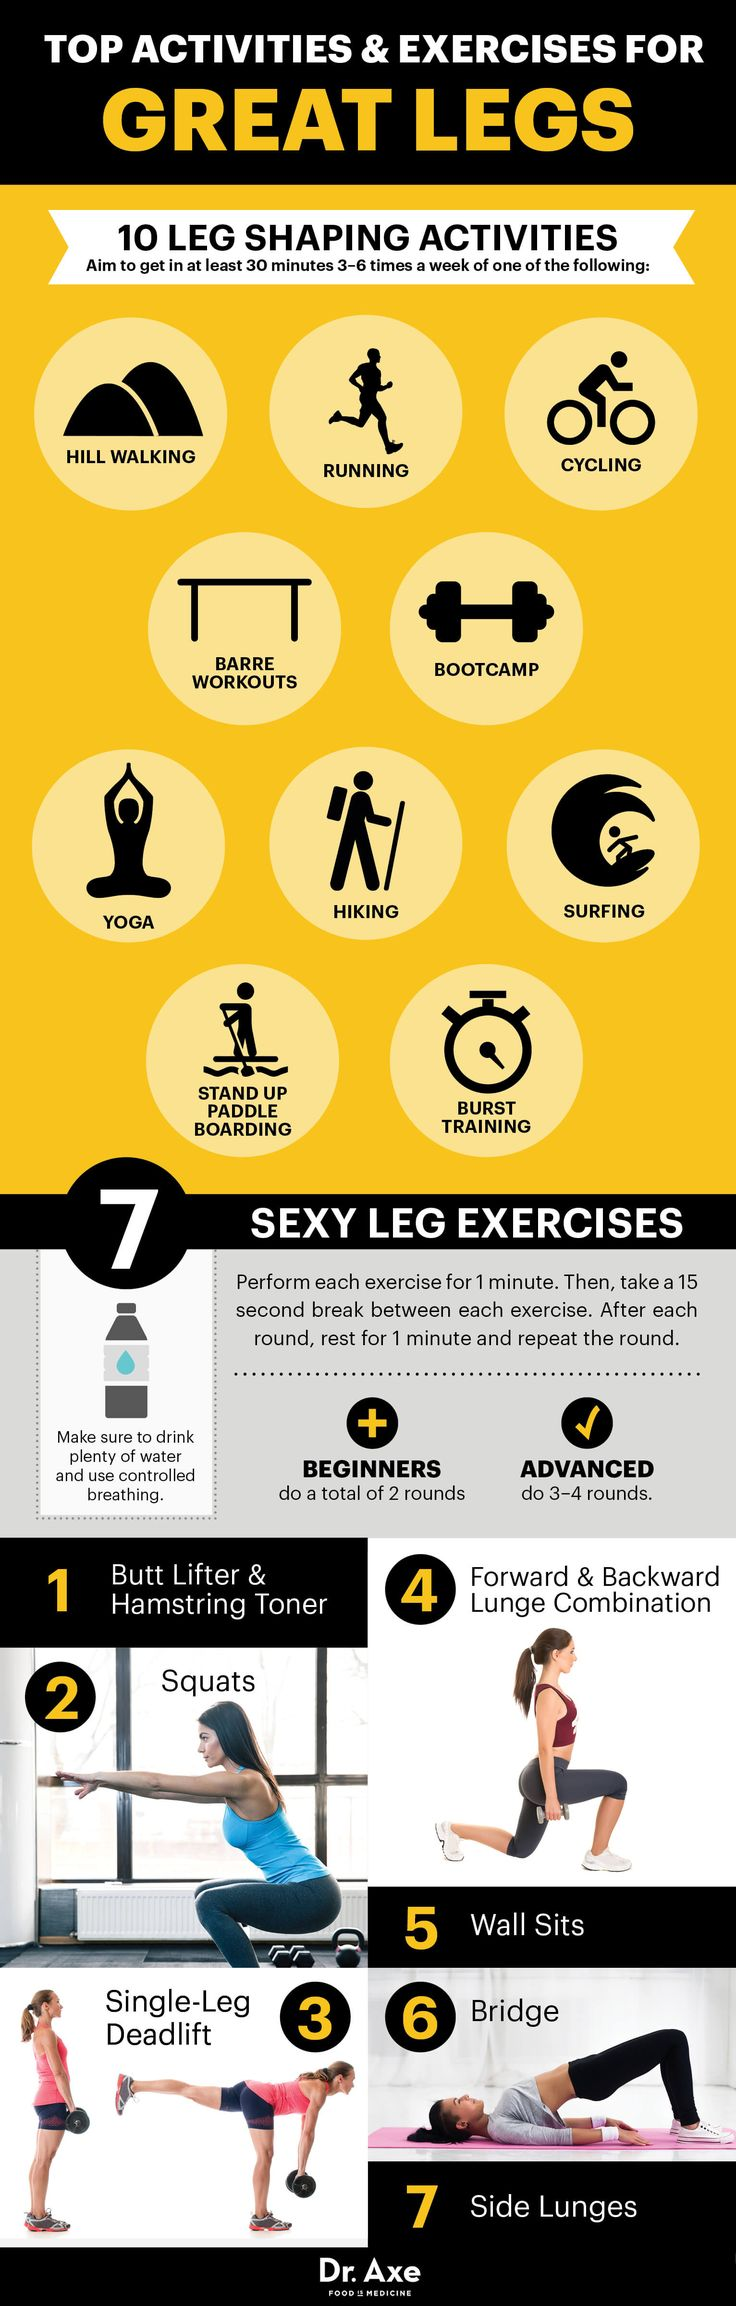 Leg workout - Dr. Axe http://www.draxe.com #health #Holistic #natural